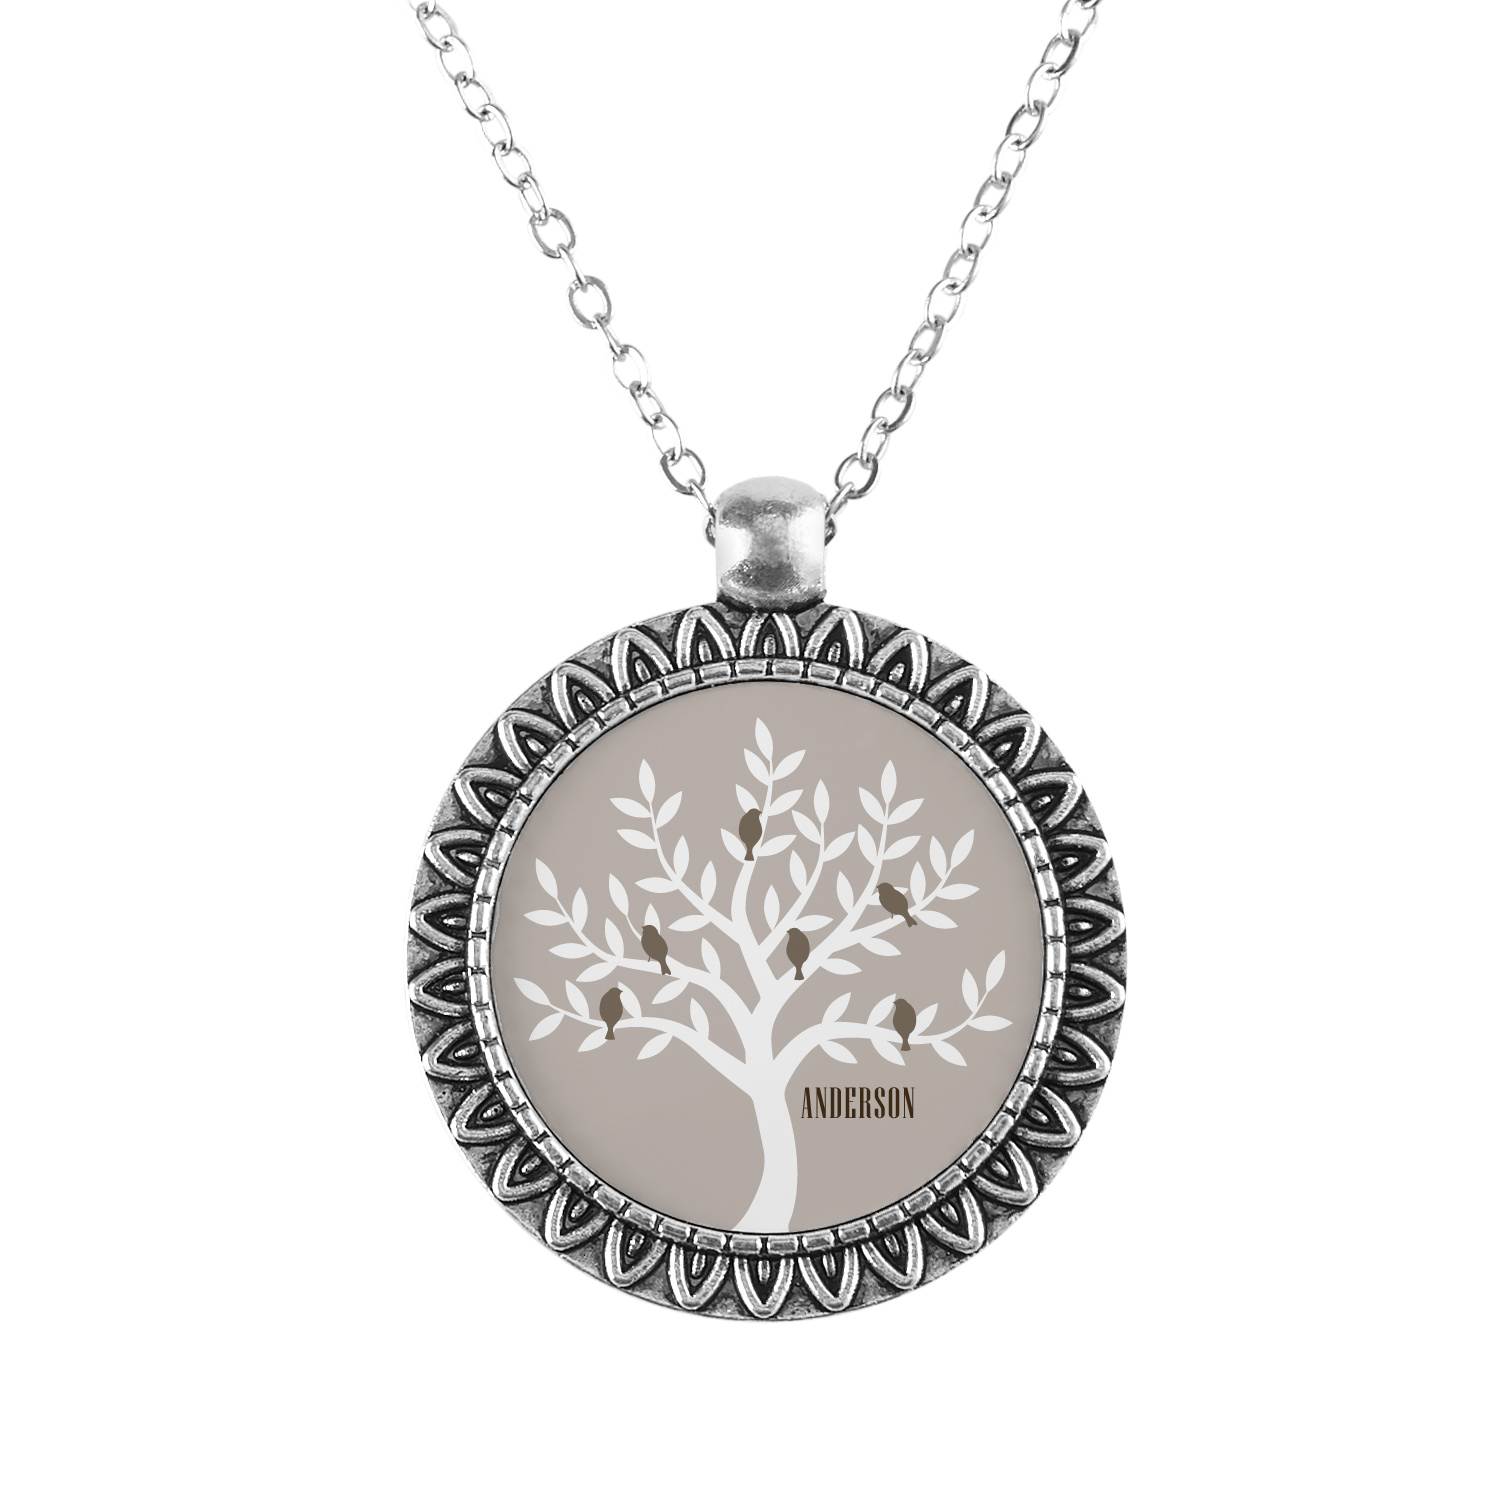 Personalized Family Tree Pendant - Available in 2 Colors